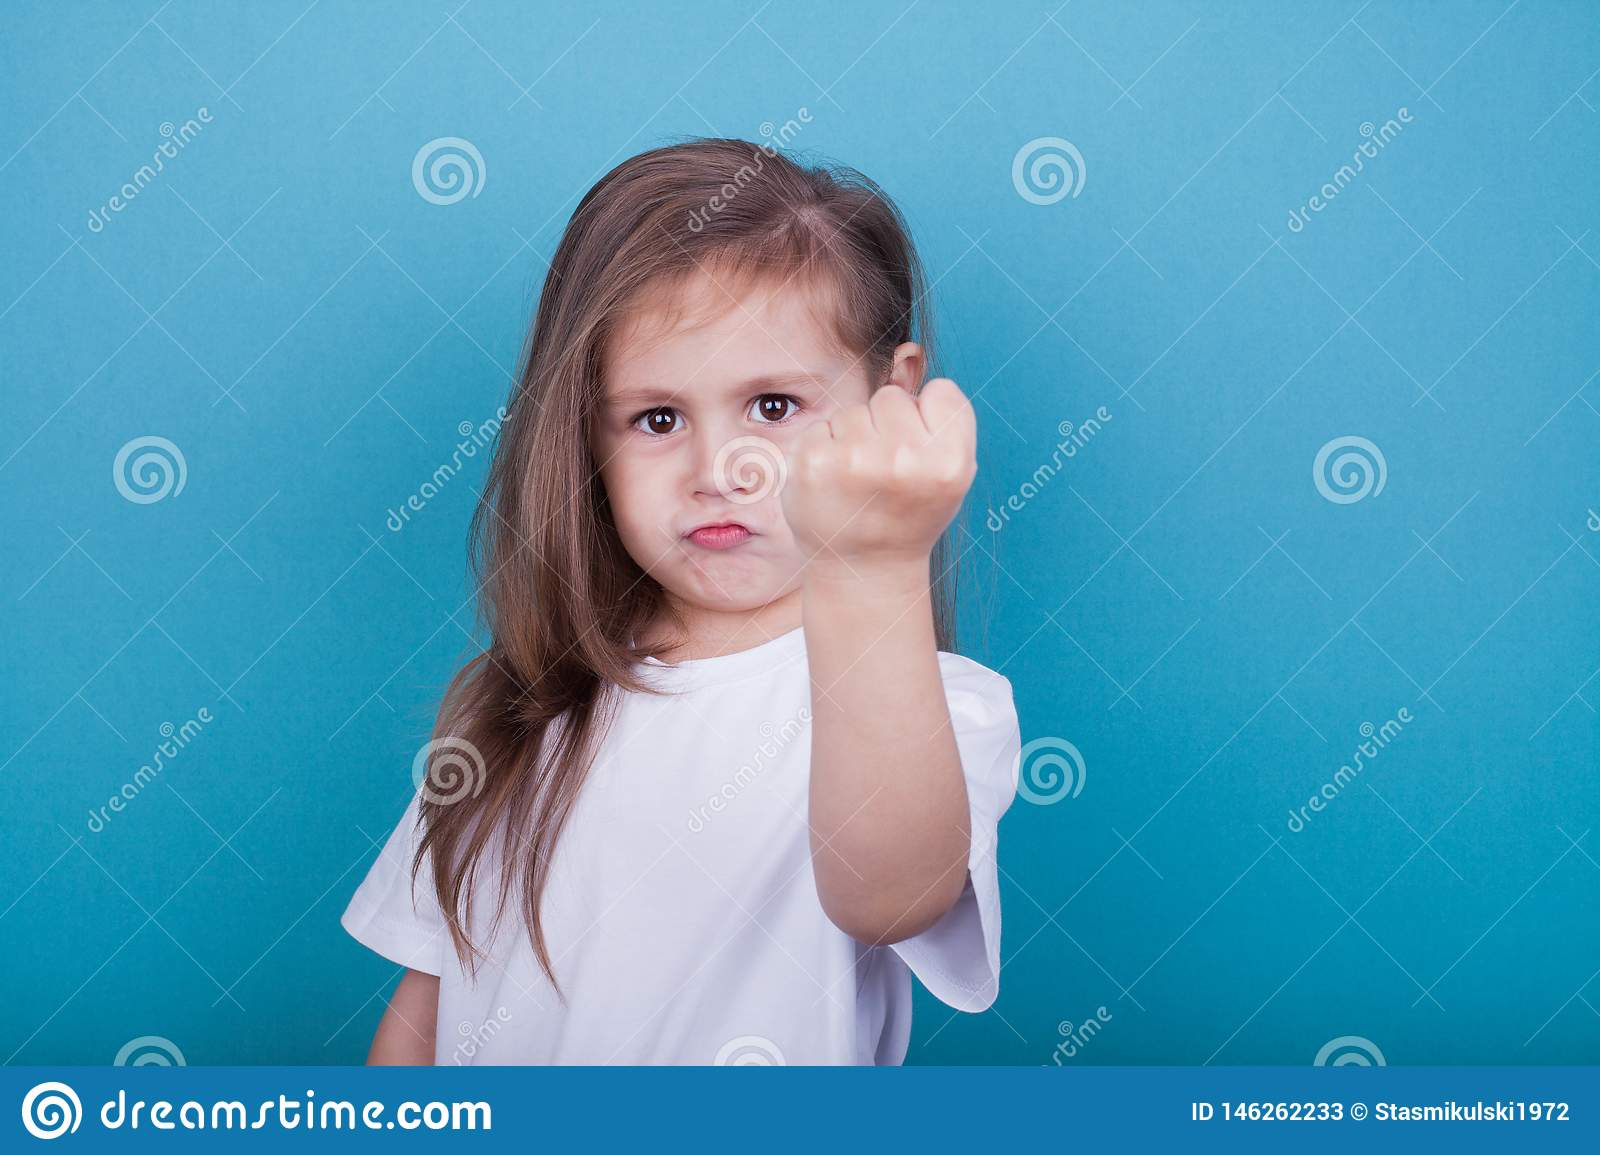 A little girl threatens with a fist